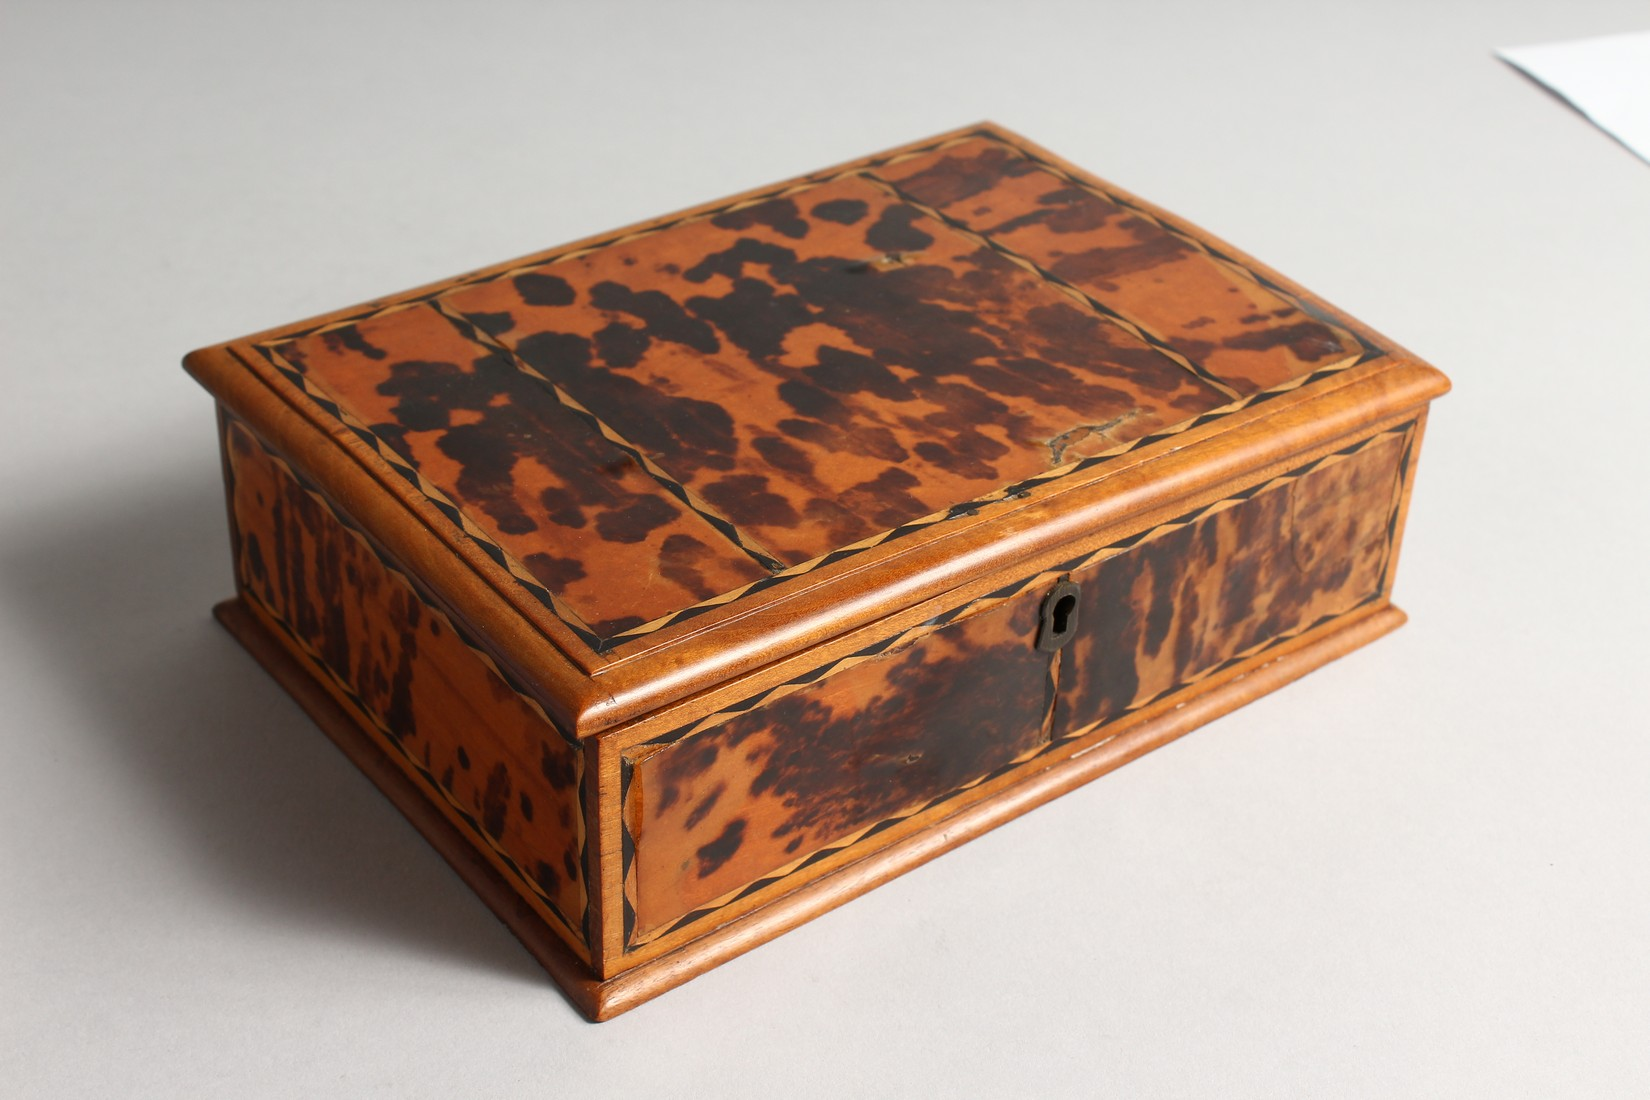 A TORTOISESHELL RECTANGULAR BOX AND COVER 8.5ins long. - Image 2 of 4